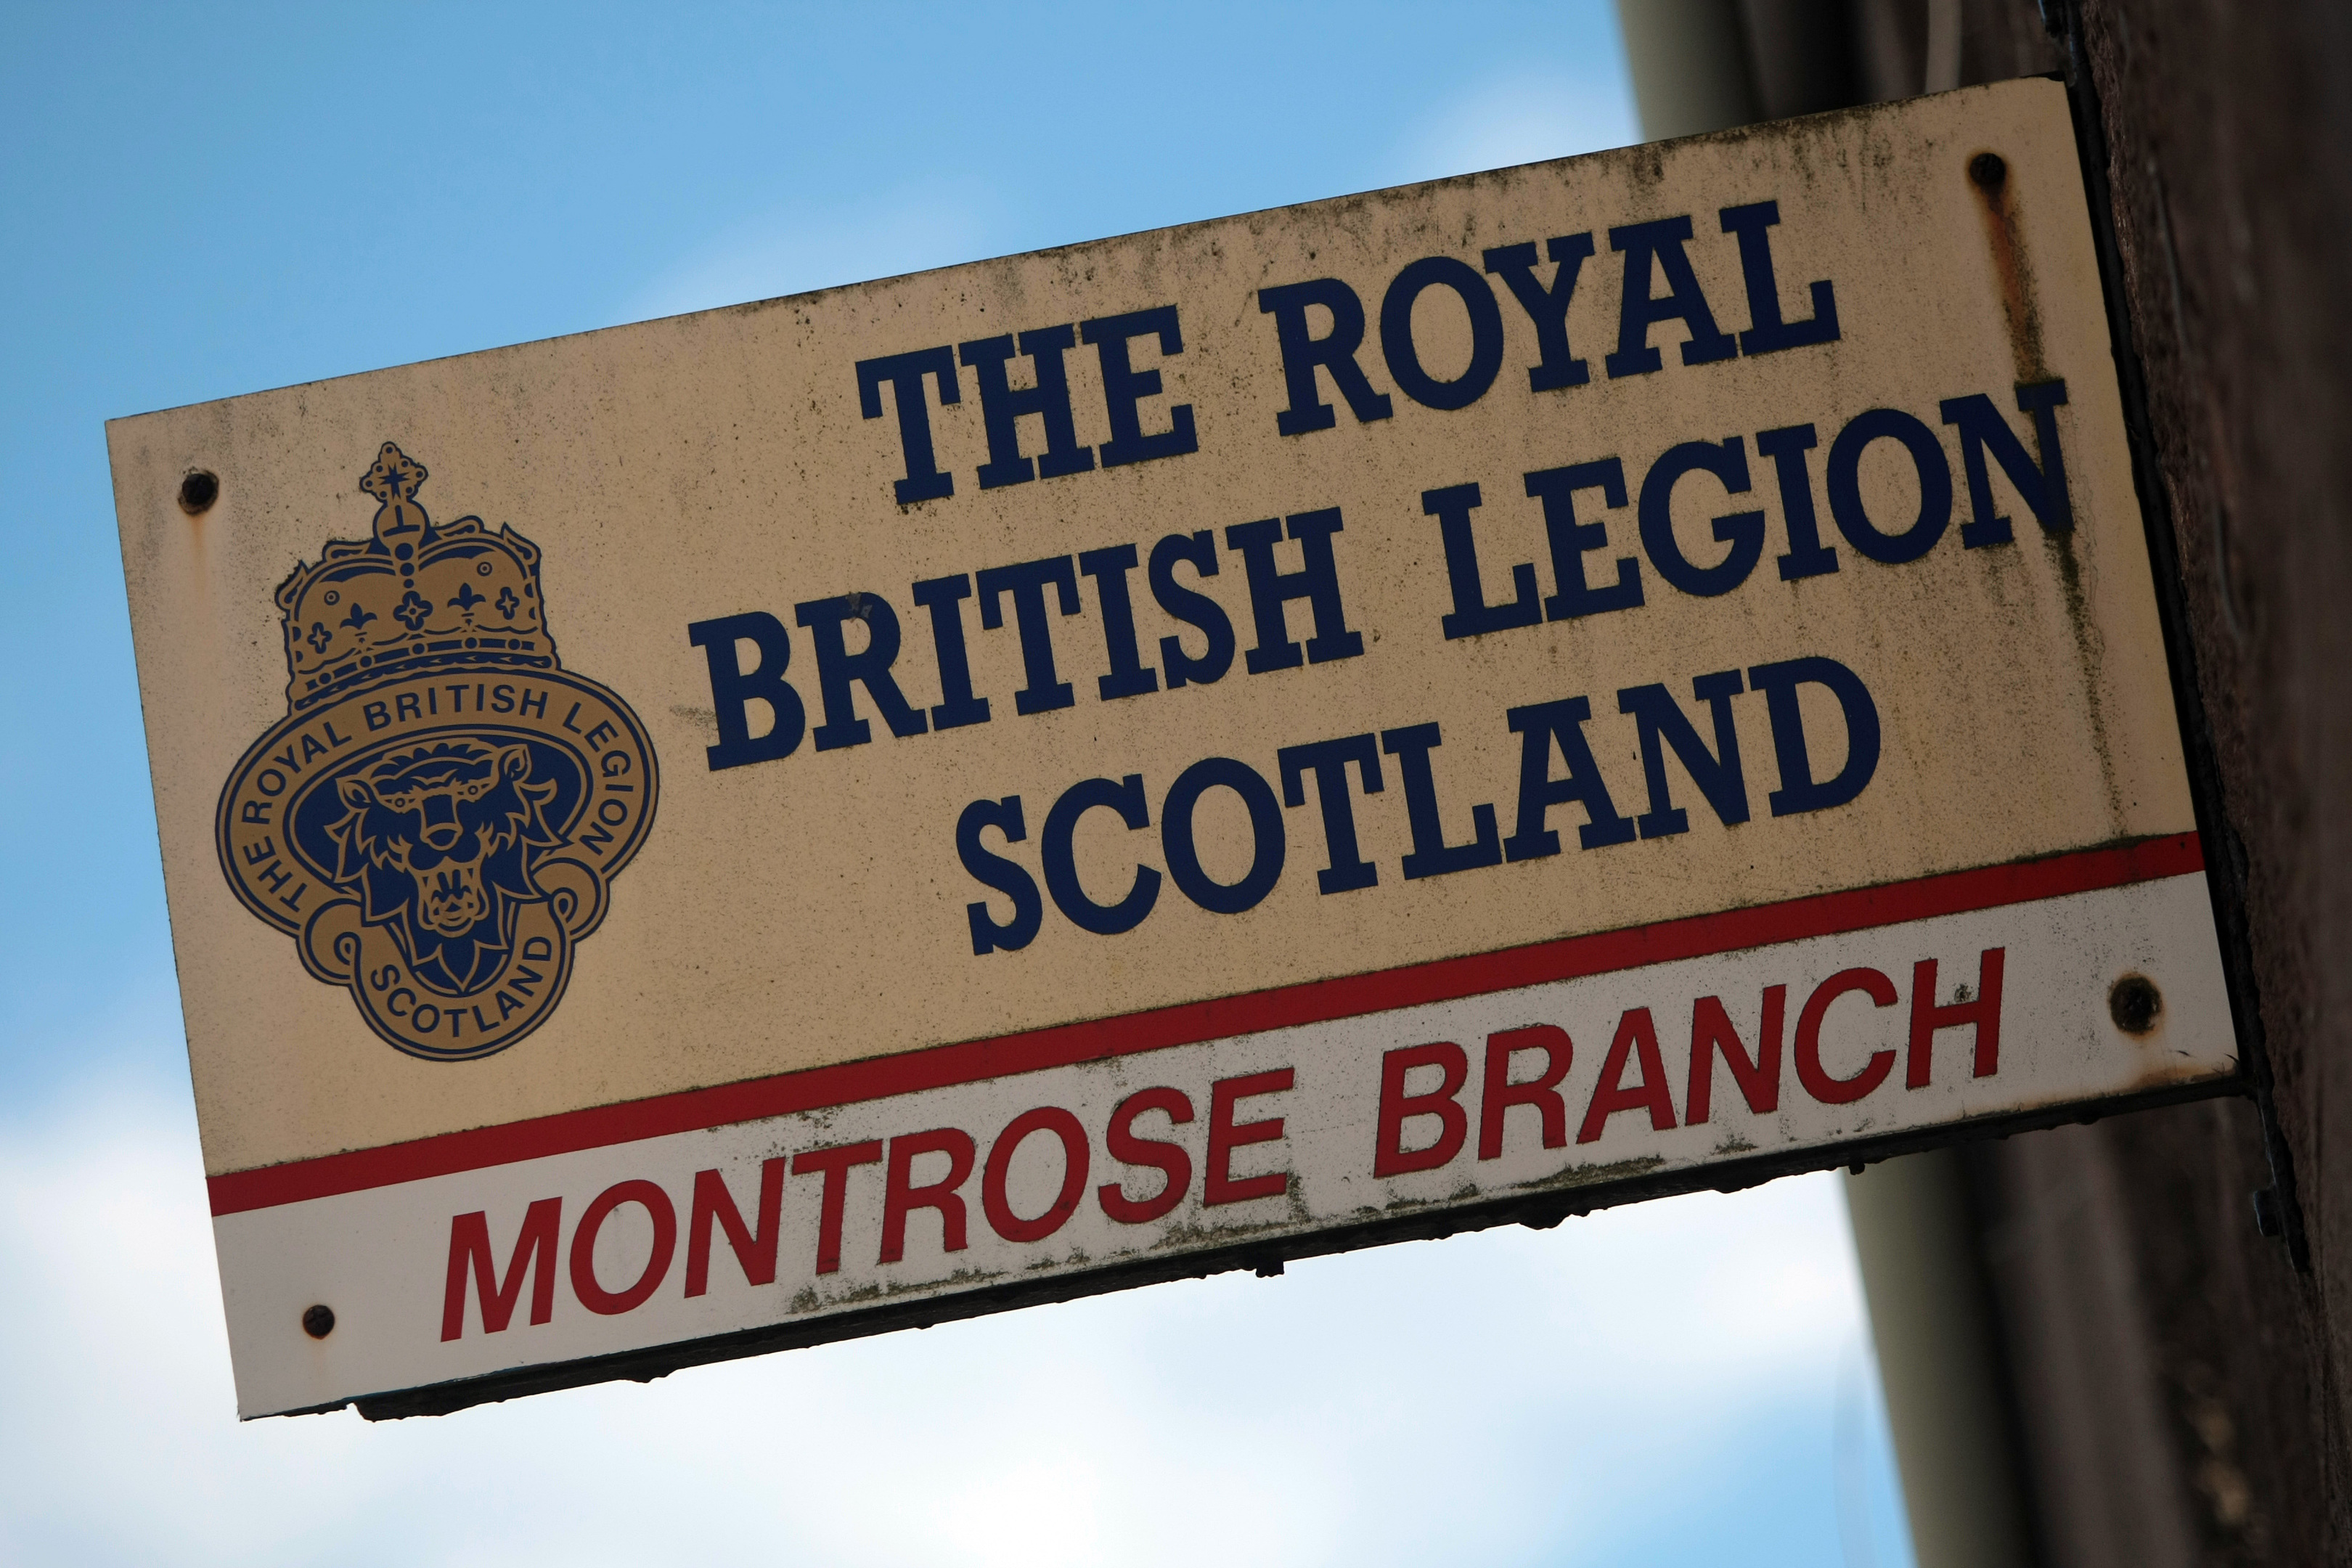 The Royal British Legion in Montrose is helping to organise the celebration.